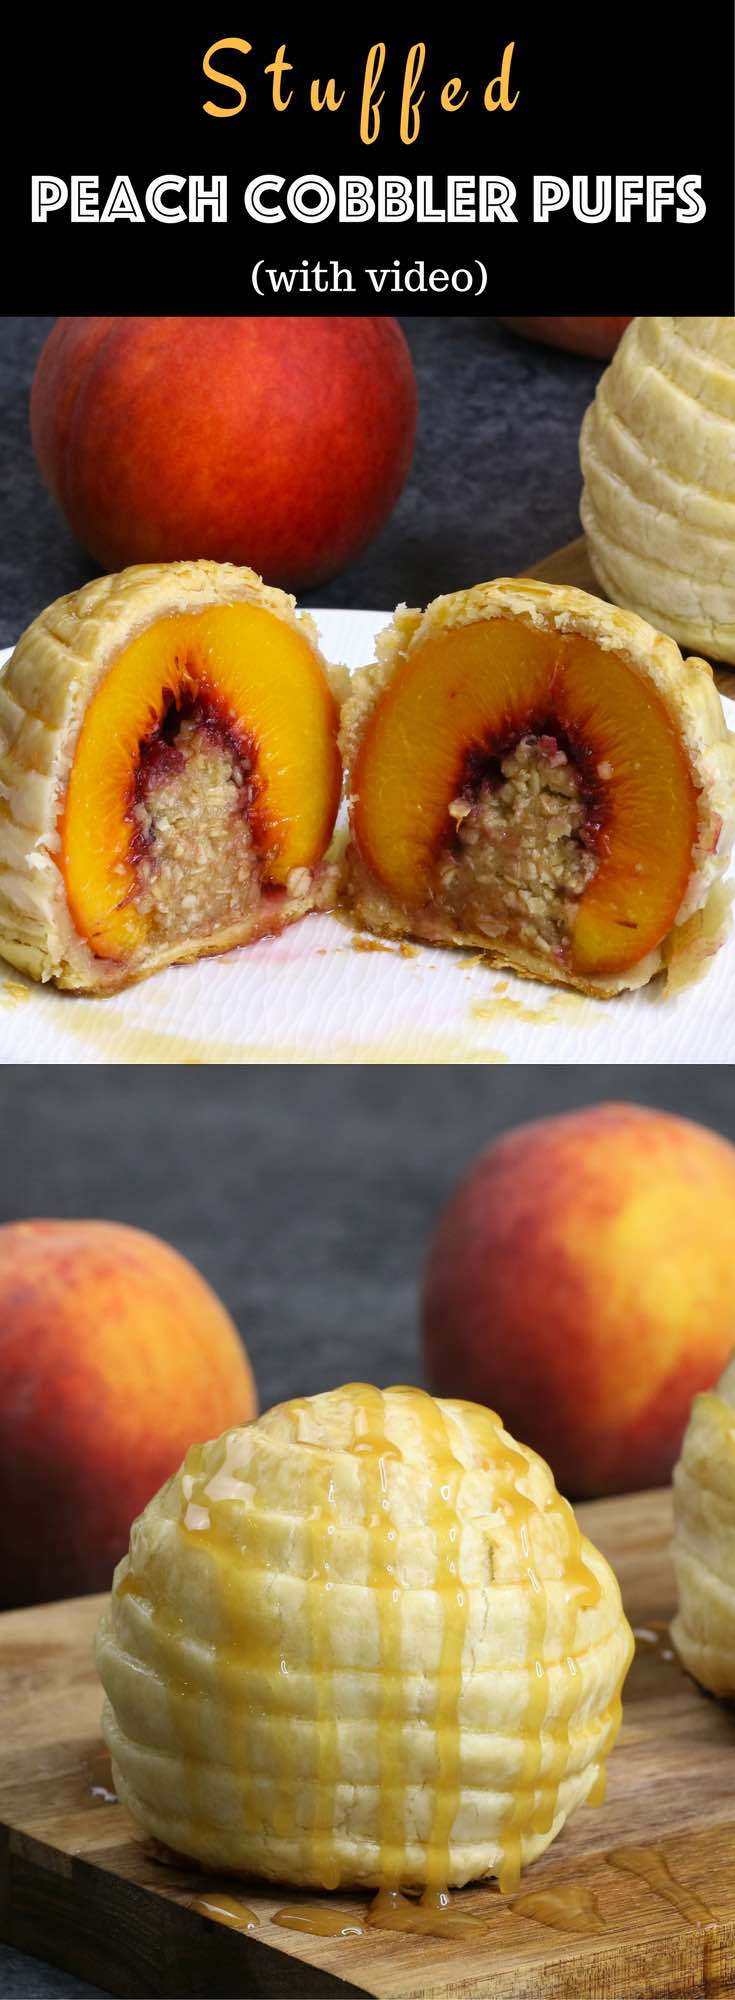 Stuffed Peach Cobbler Puffs – Tender and moist fresh peach stuffed with sweet crumbles, and then wrapped with pie crust. Makes a delicious summer dessert and will definitely wow your family and friends. And it's simple to make! All you need is fresh peaches, butter, brown sugar, flour oats and pie crust. So Good! Quick and easy recipe. Party food. Great for a holiday brunch. Video recipe. | Tipbuzz.com